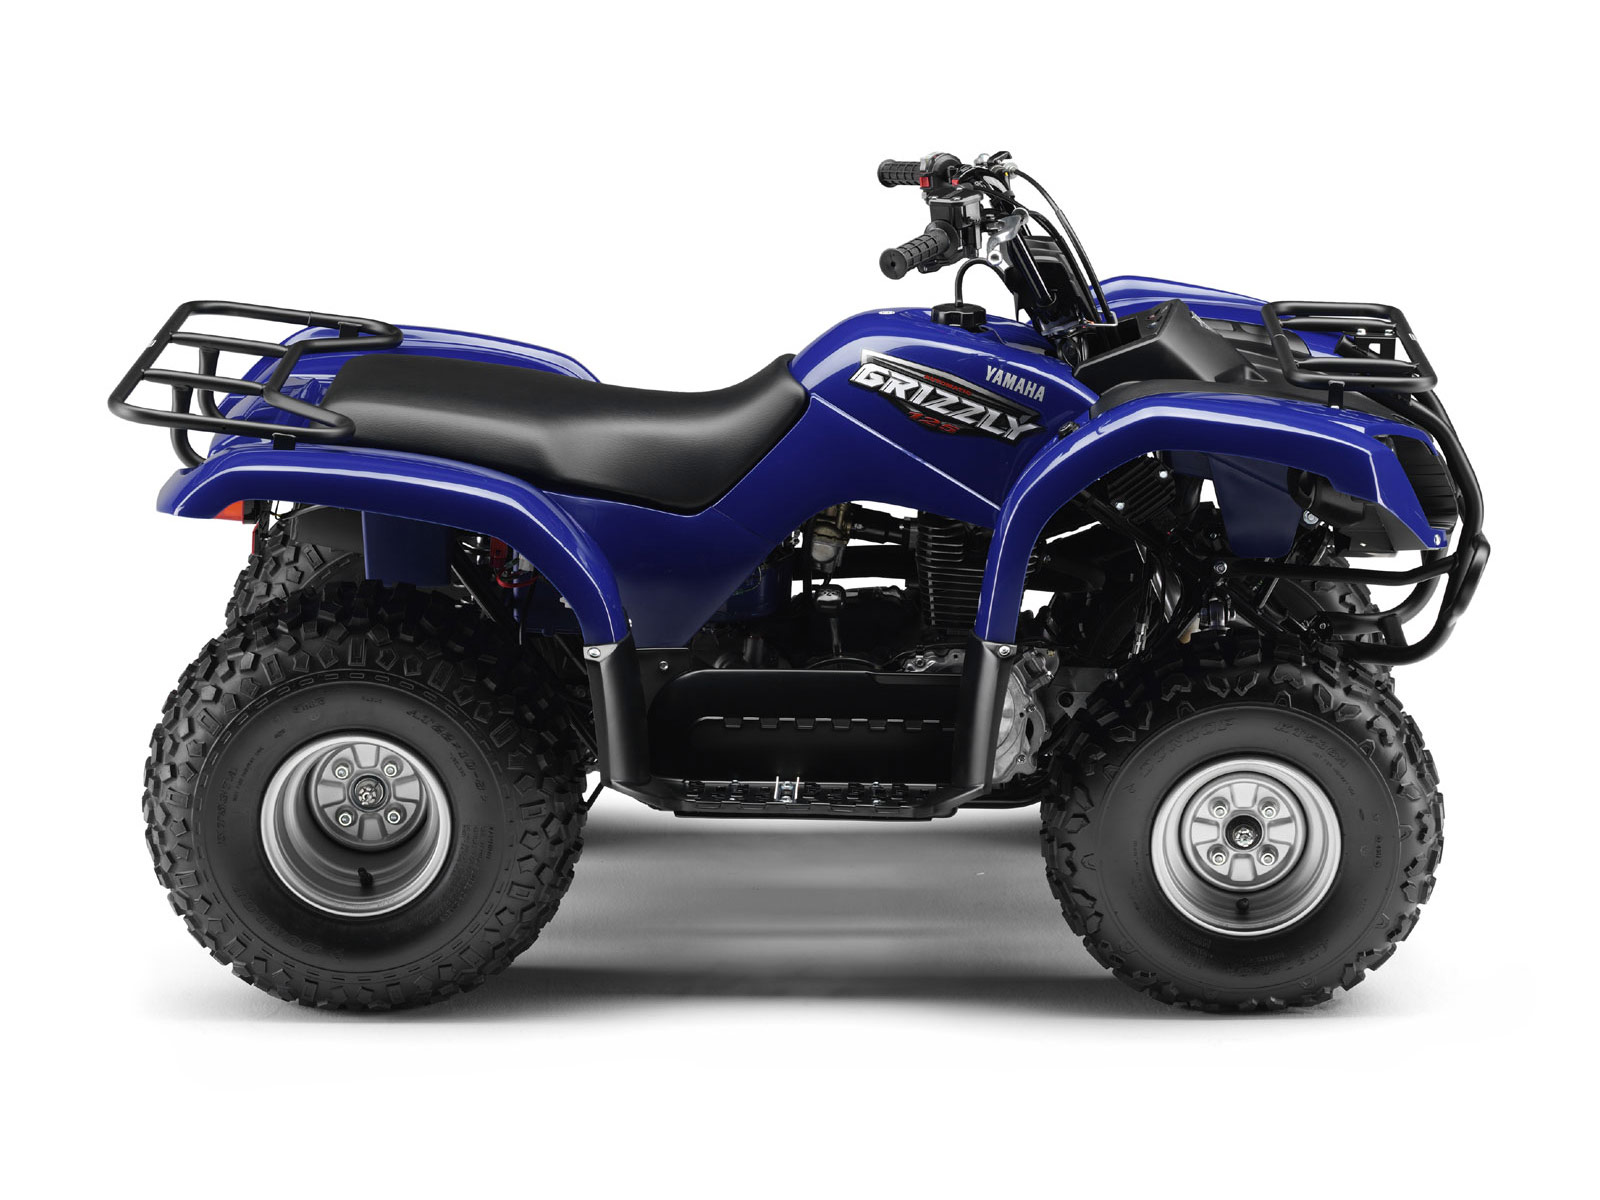 2009 grizzly 125 yamaha atv pictures accident lawyer info rh atv pictures blogspot com 1997 Yamaha Grizzly 125 Manual Honda Grizzly 125 Manual